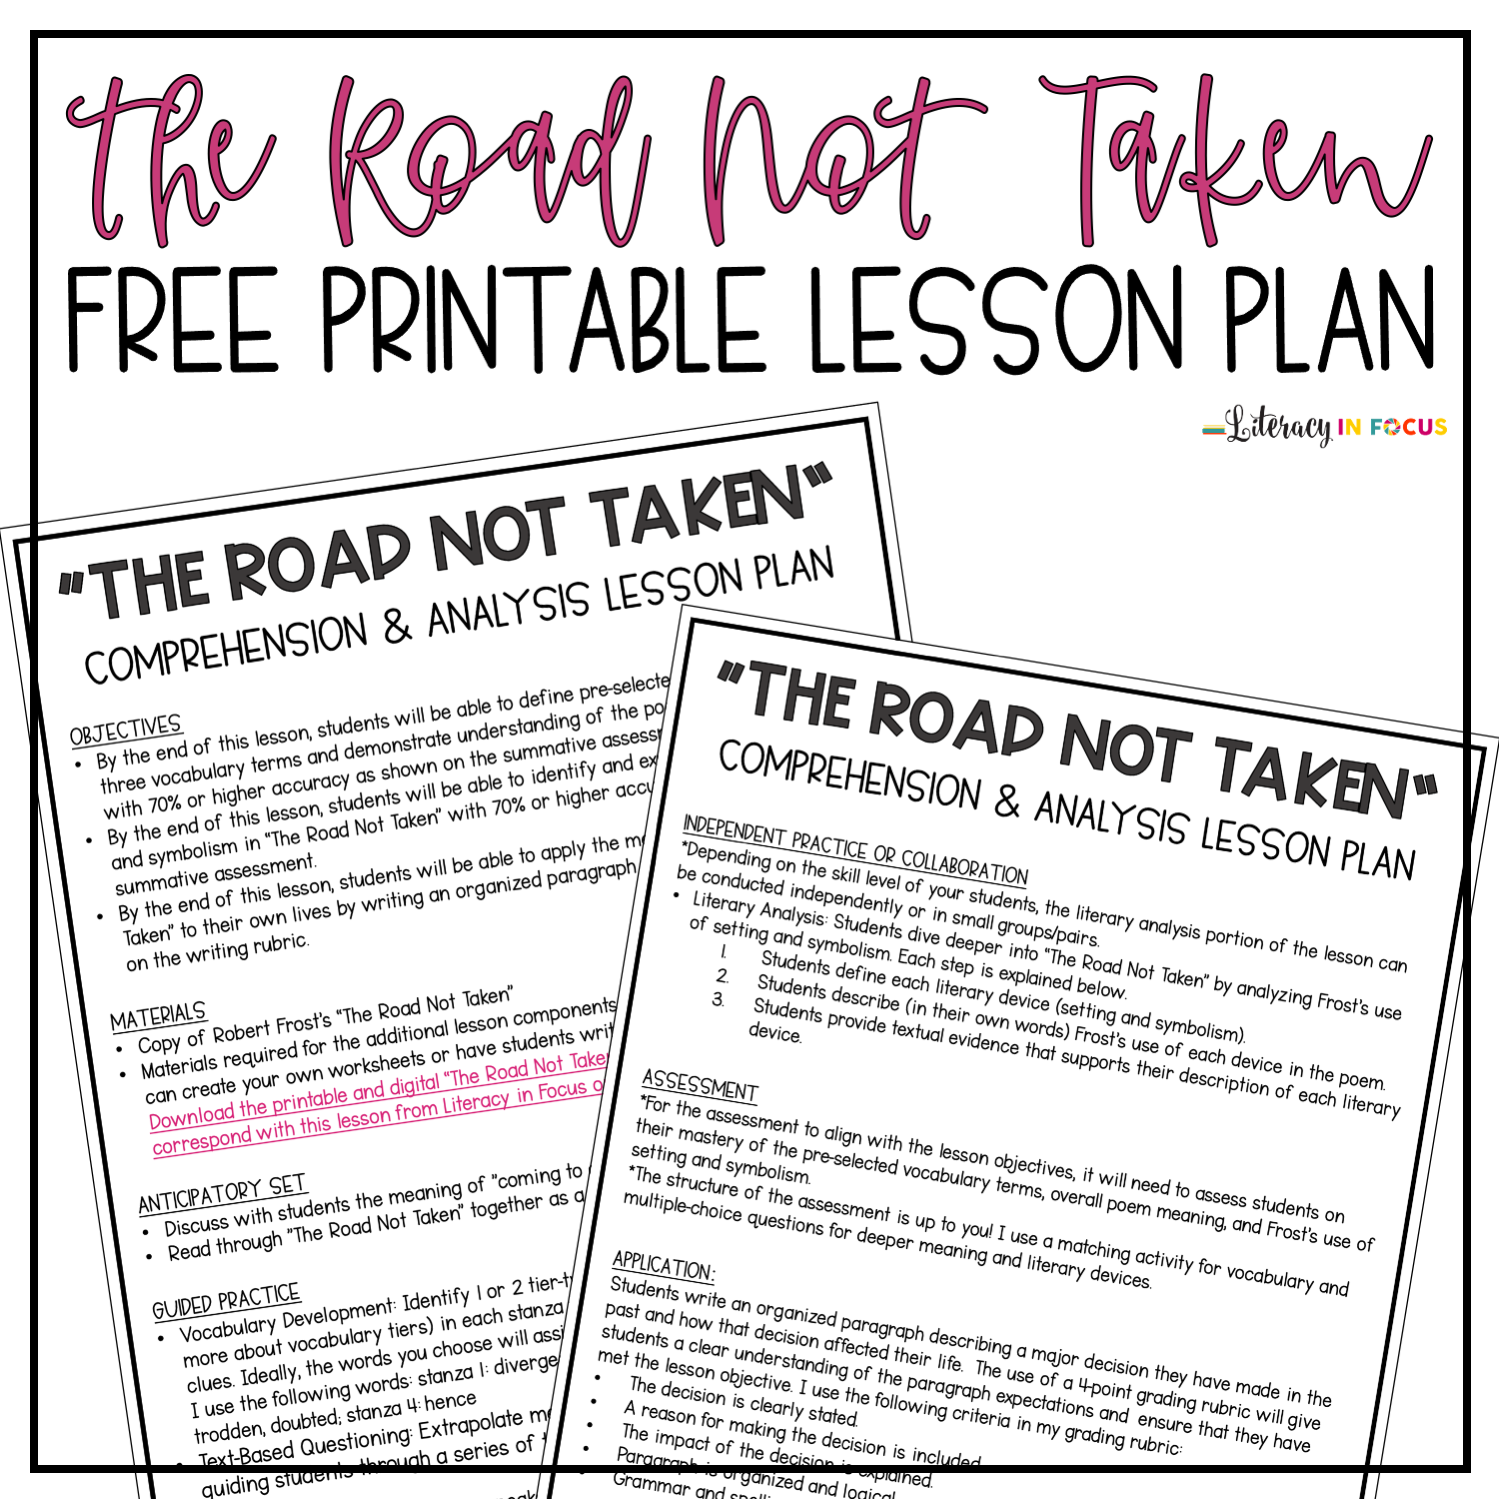 The Road Not Taken Free Printable Lesson Plan